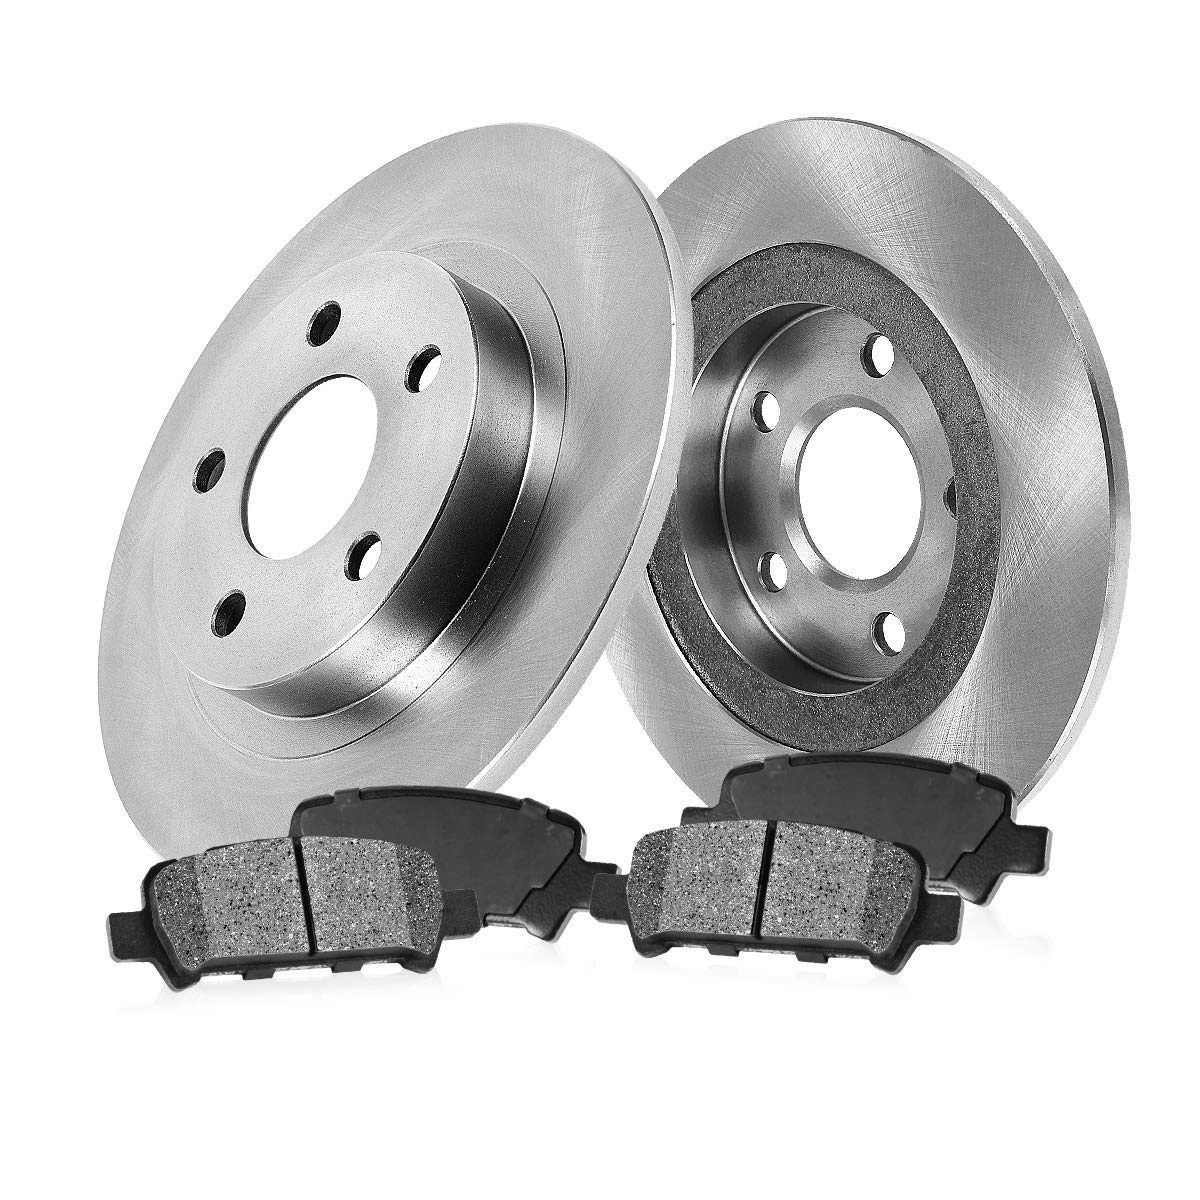 Replacement Parts 2013 Fits Audi A3 TDI Front Ceramic Brake Pads with Hardware Kits and Two Years Manufacturer Warranty